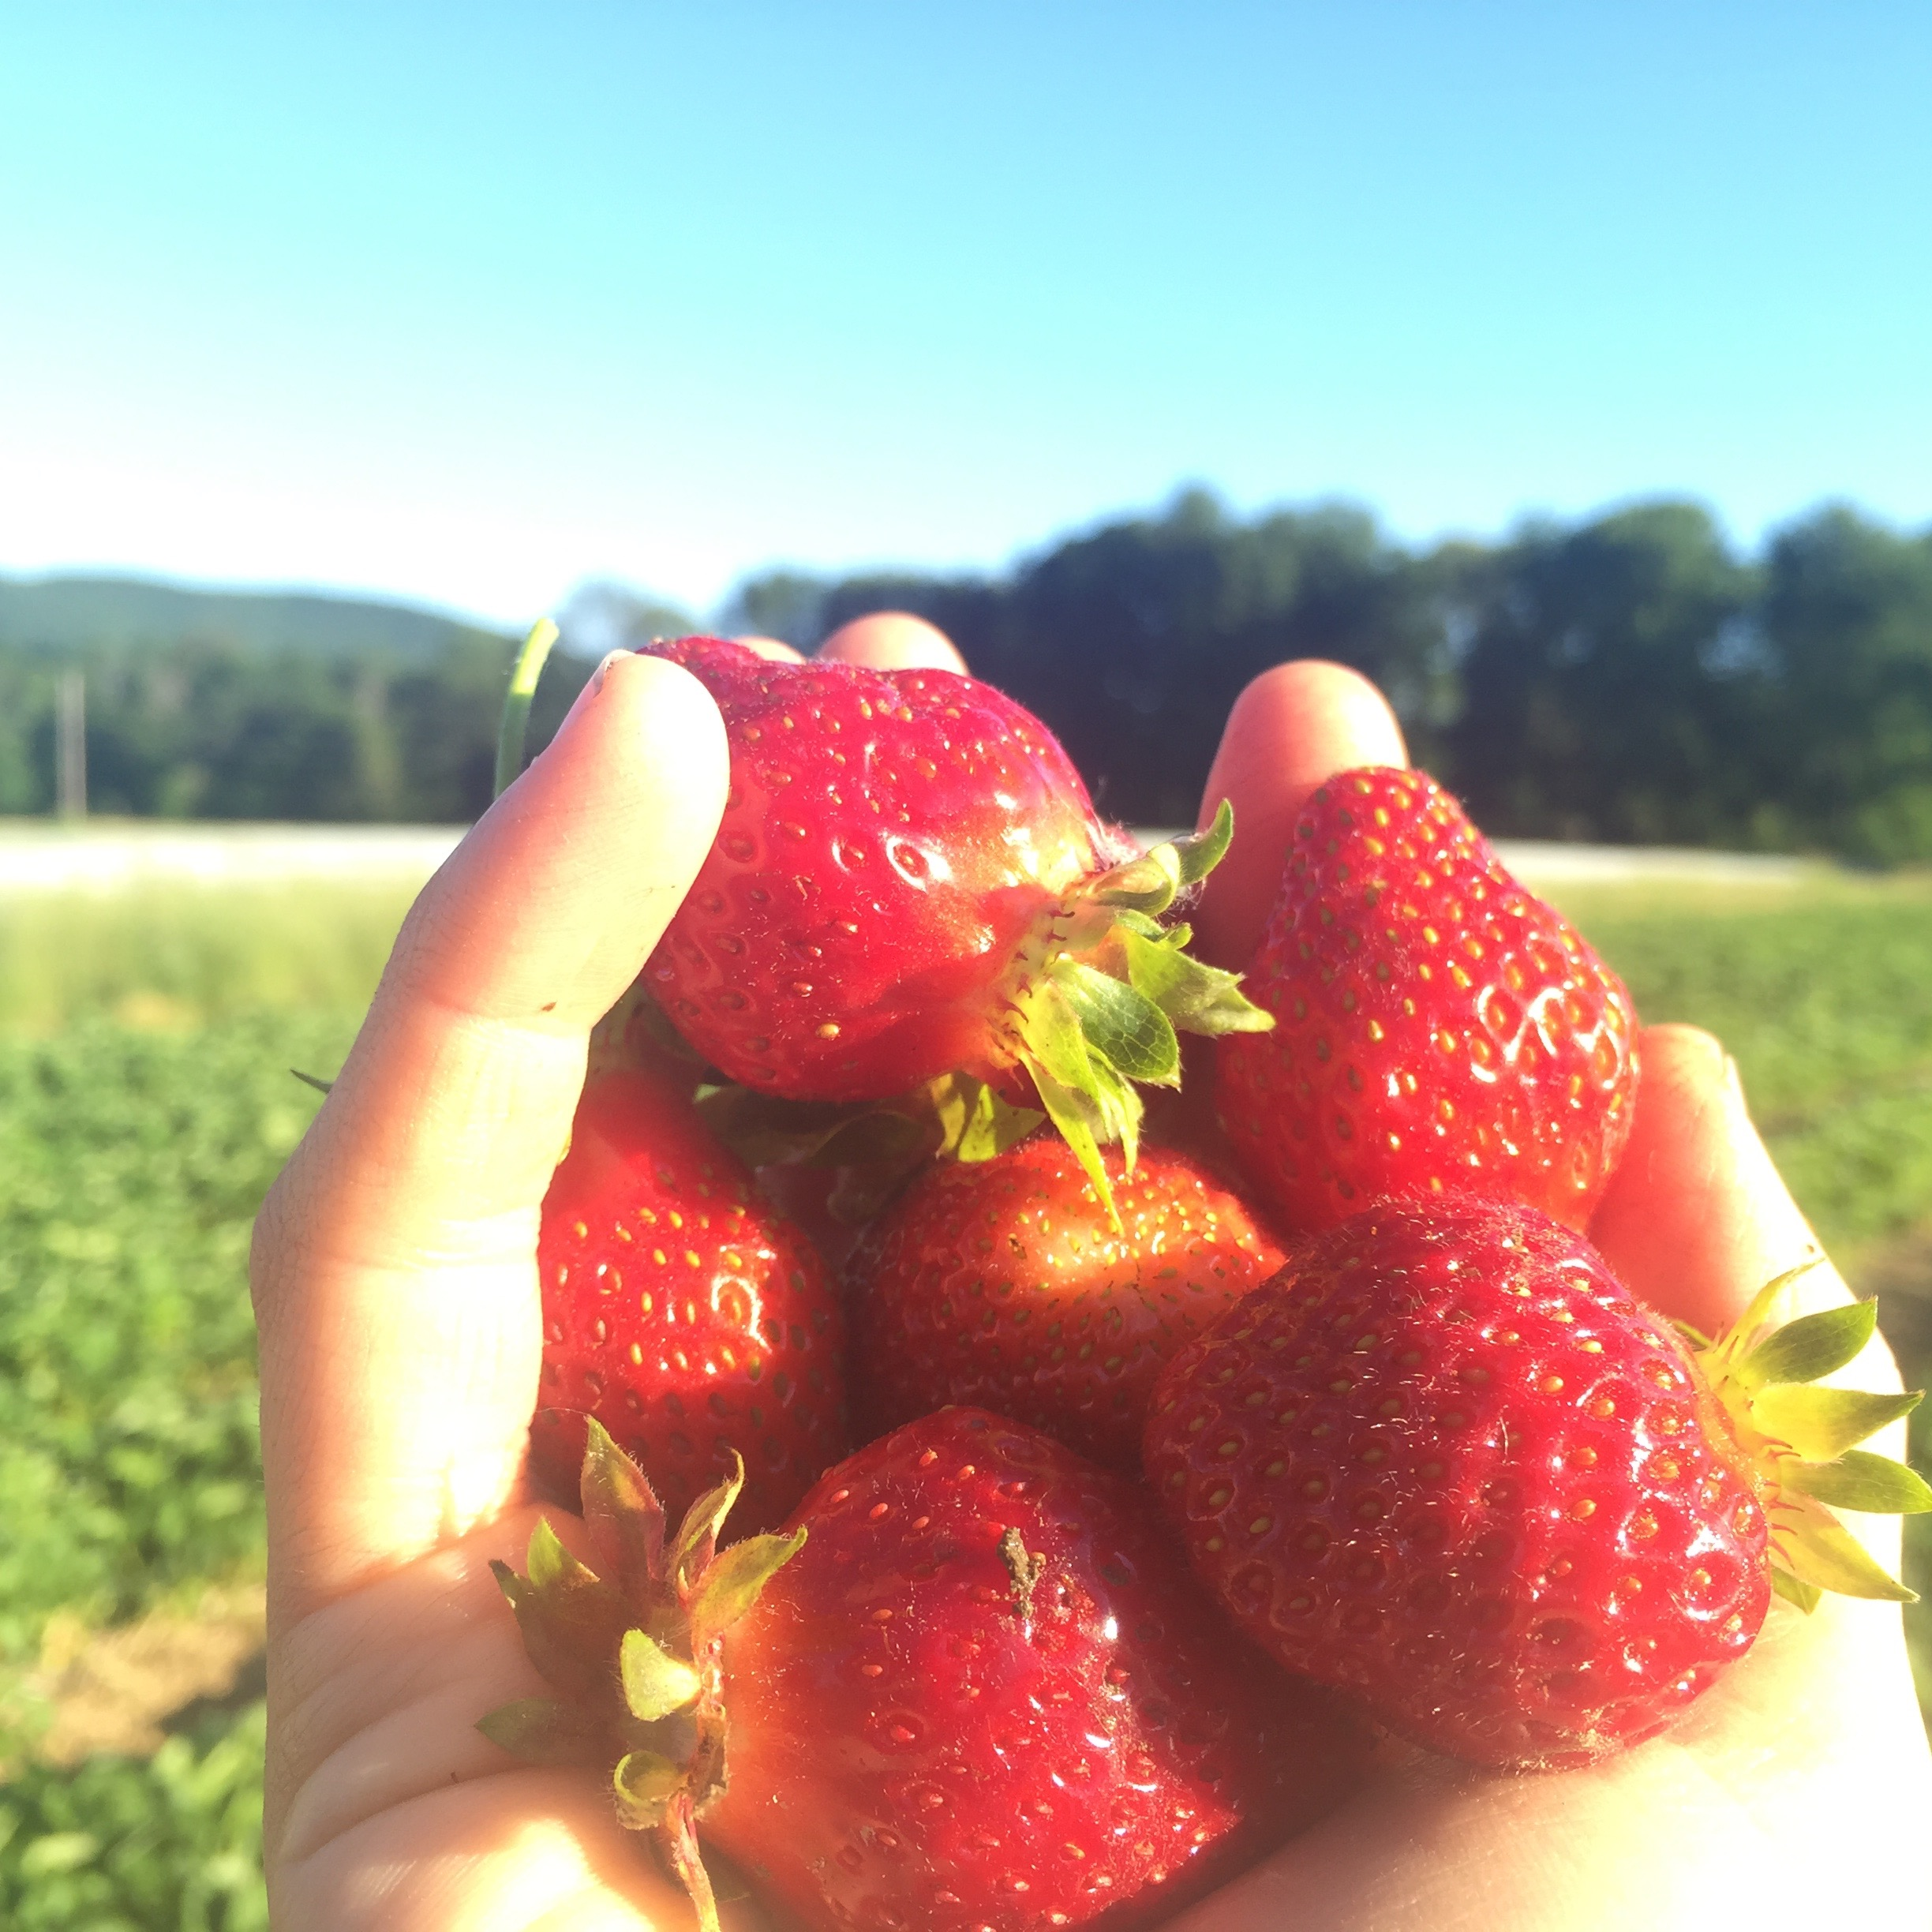 pictured here, our own berries taken in our own field- fresh picked in the morning light, absolutely amazing flavor, probably wouldn't last more then 5 days in your fridge- but why would you want to wait that long to eat anyway?